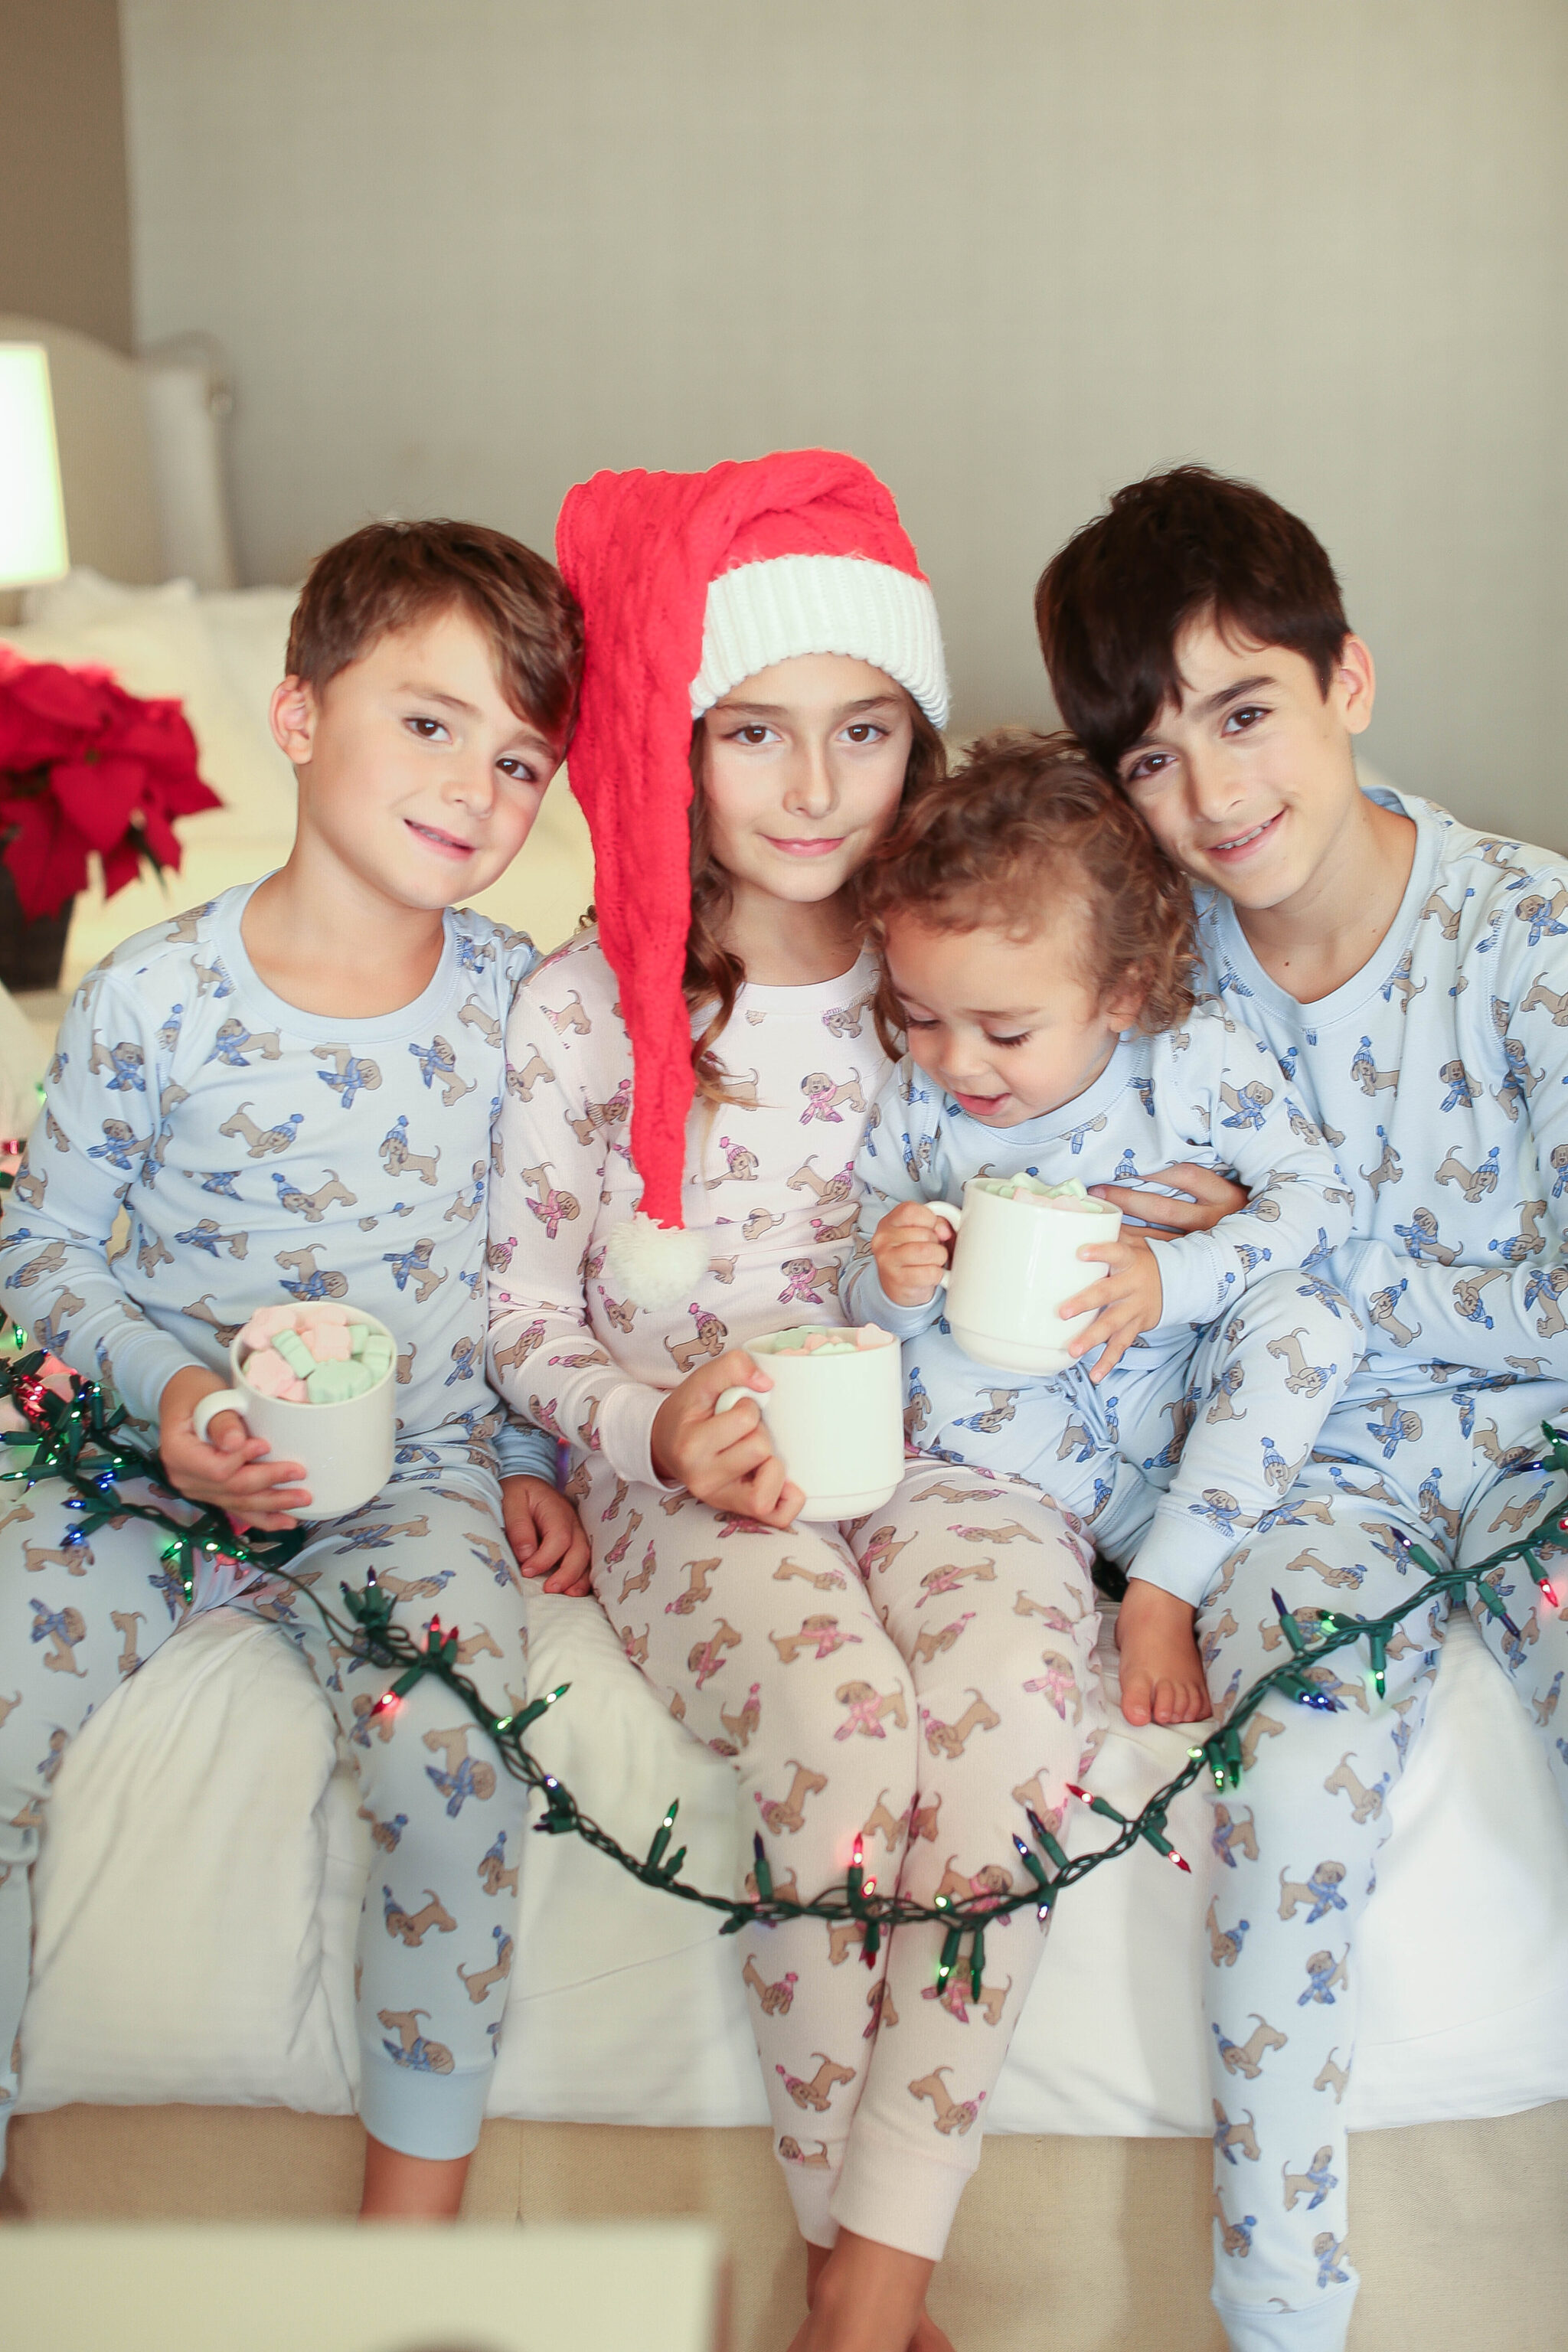 kids in pajamas with hot chocolate